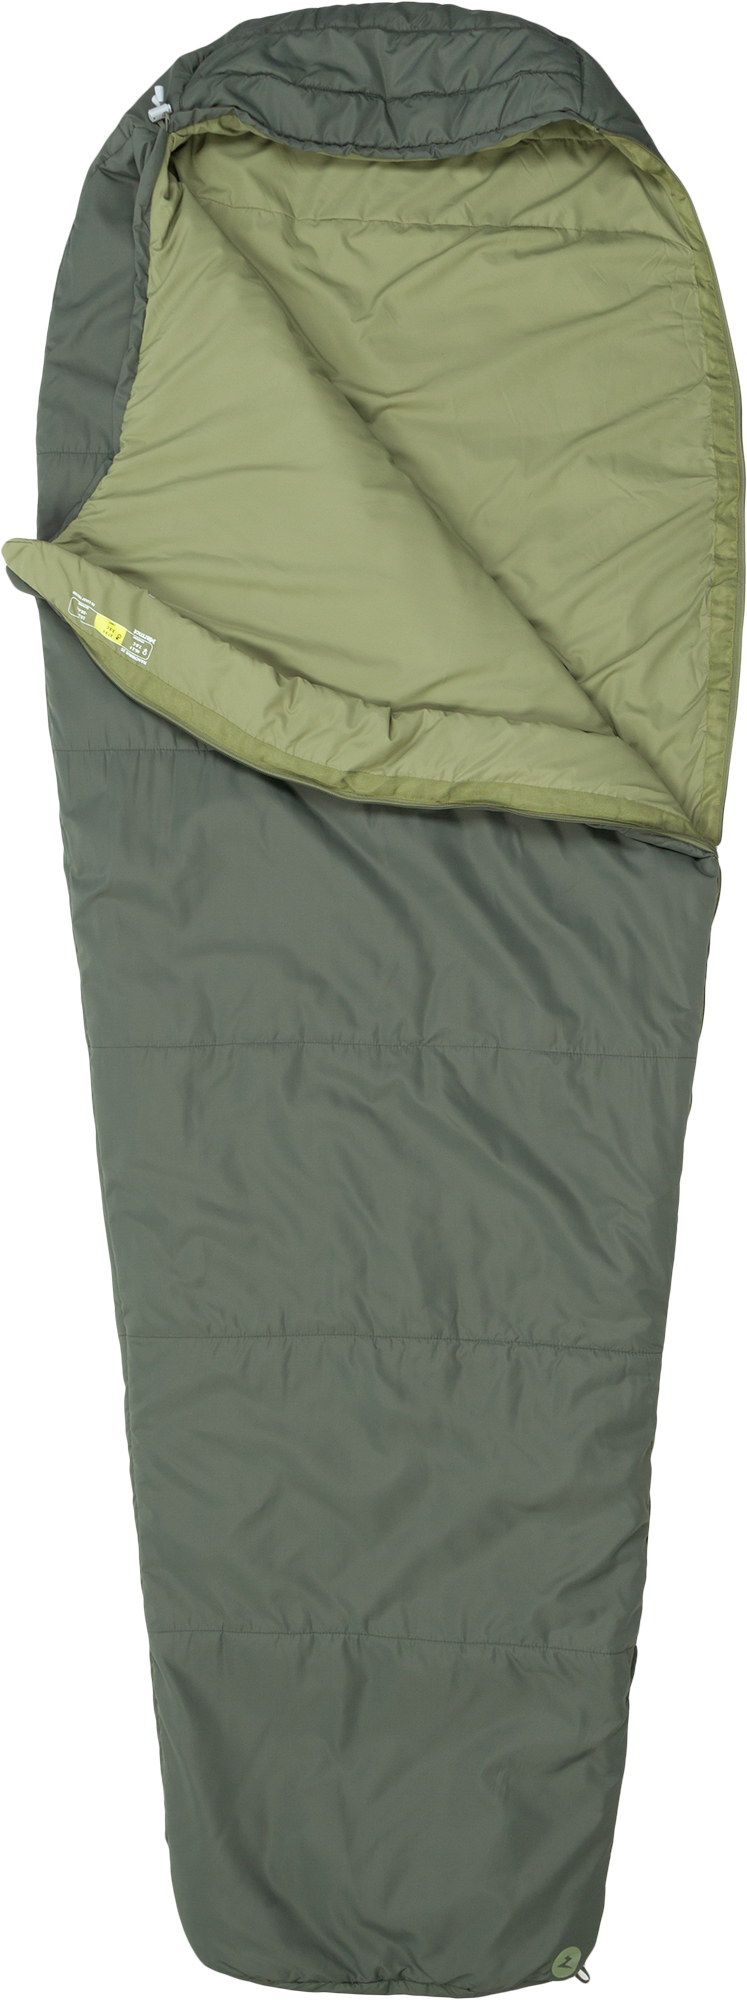 Marmot Nanowave 35 Long